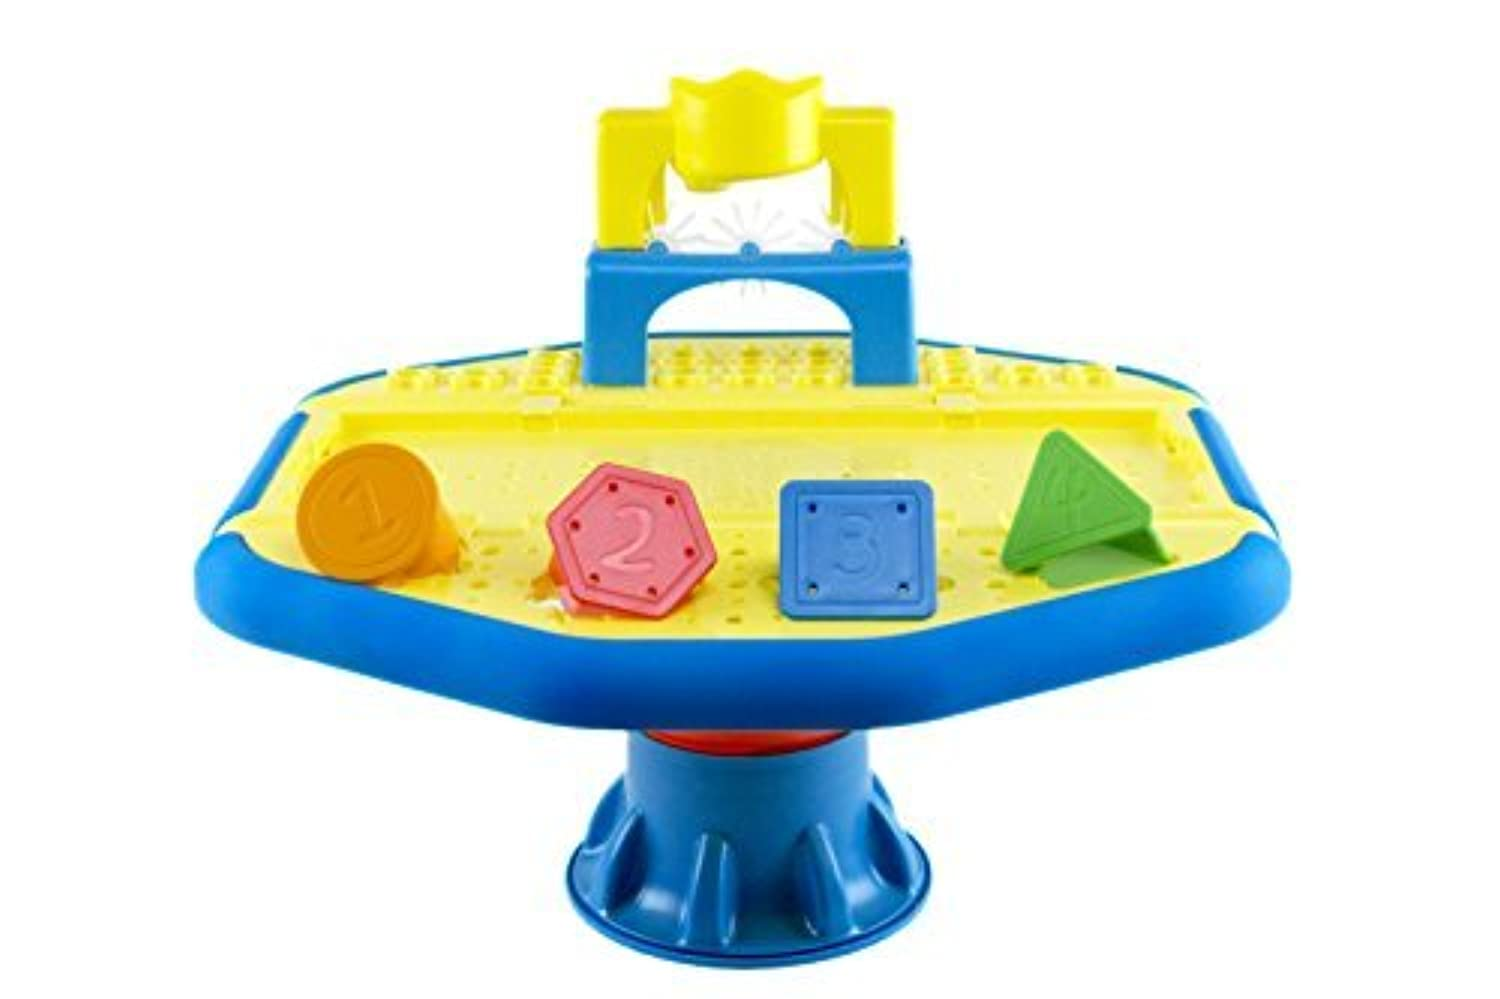 New Tubby Table Bathtime Toy by Tubby Table [並行輸入品]